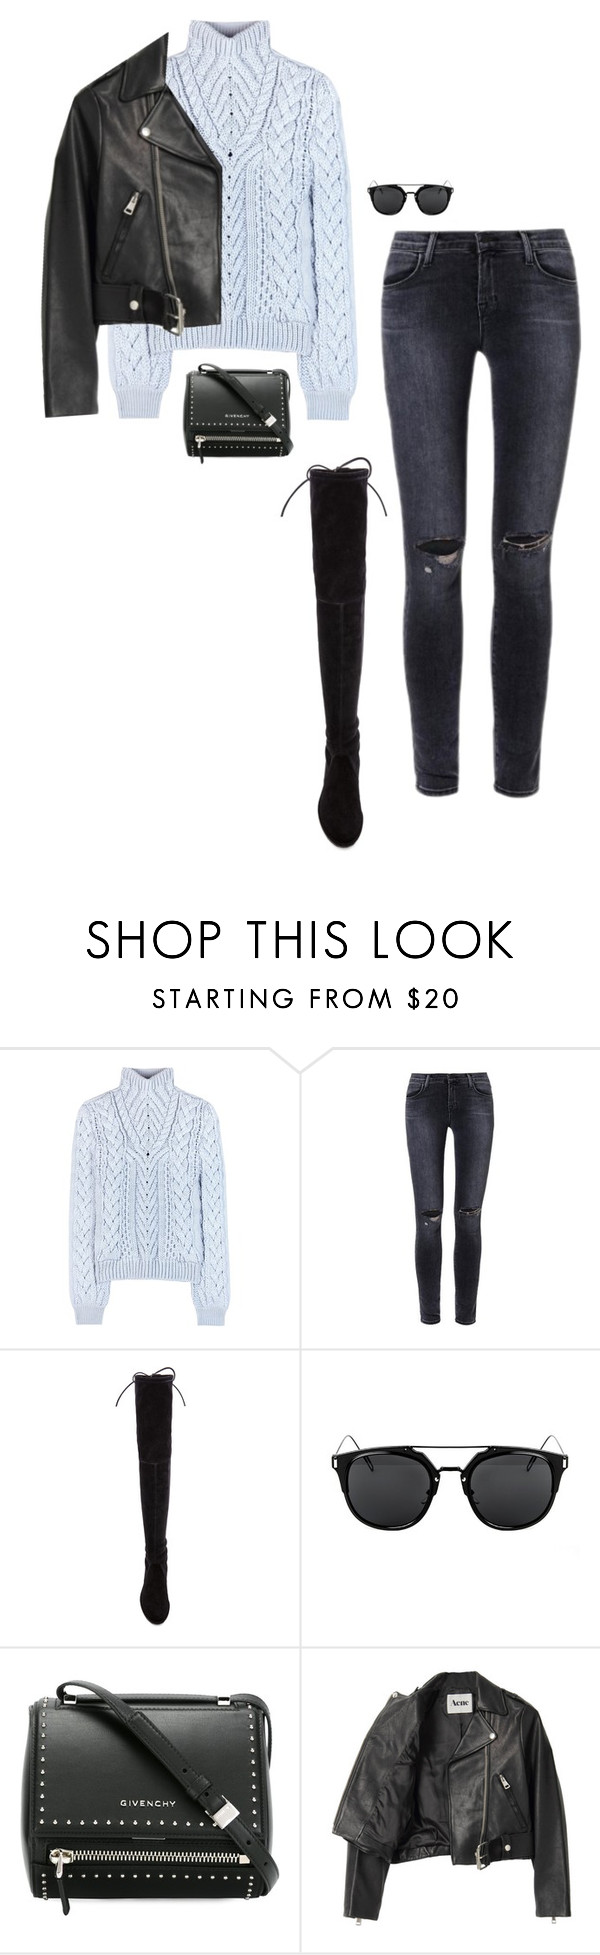 """""""Untitled #494"""" by bareluxe ❤ liked on Polyvore featuring Altuzarra, J Brand, Stuart Weitzman, Givenchy and Acne Studios"""